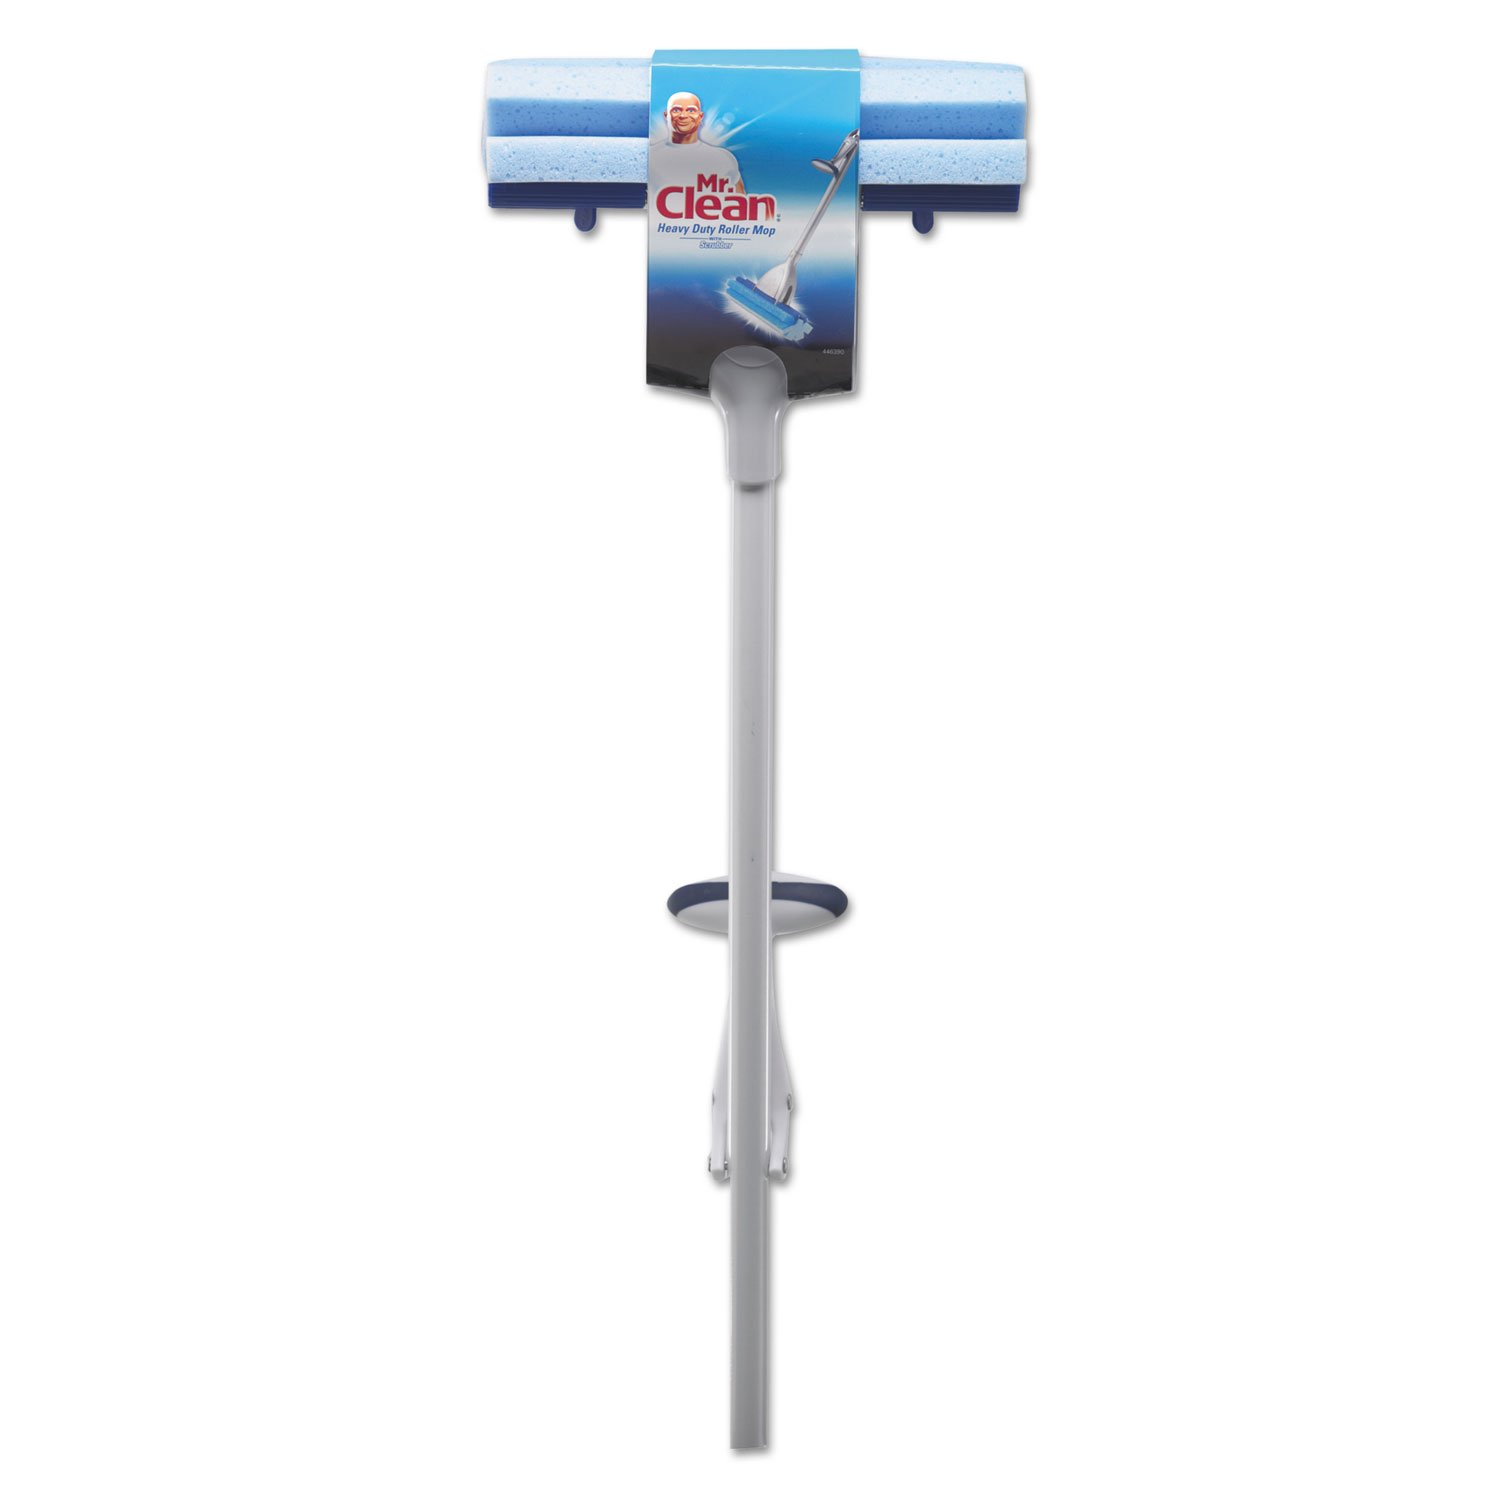 Mr. Clean 446390 Heavy Duty Roller Mop, 45'' Length Handle, White/Blue